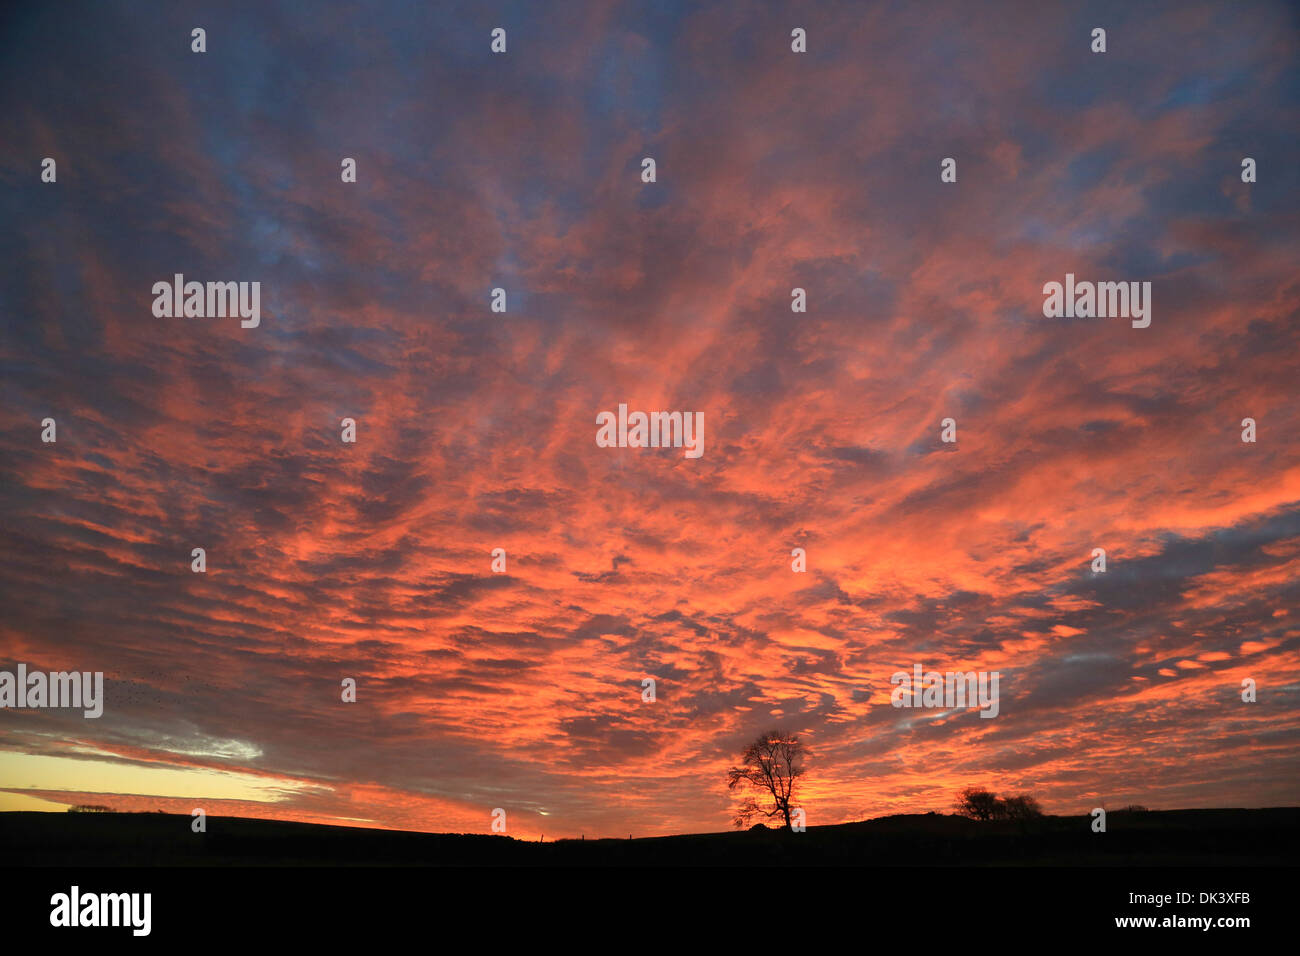 30th November 2013, With colder weather forecast clouds gather at sundown near Eyam in the Derbyshire Peak District. - Stock Image